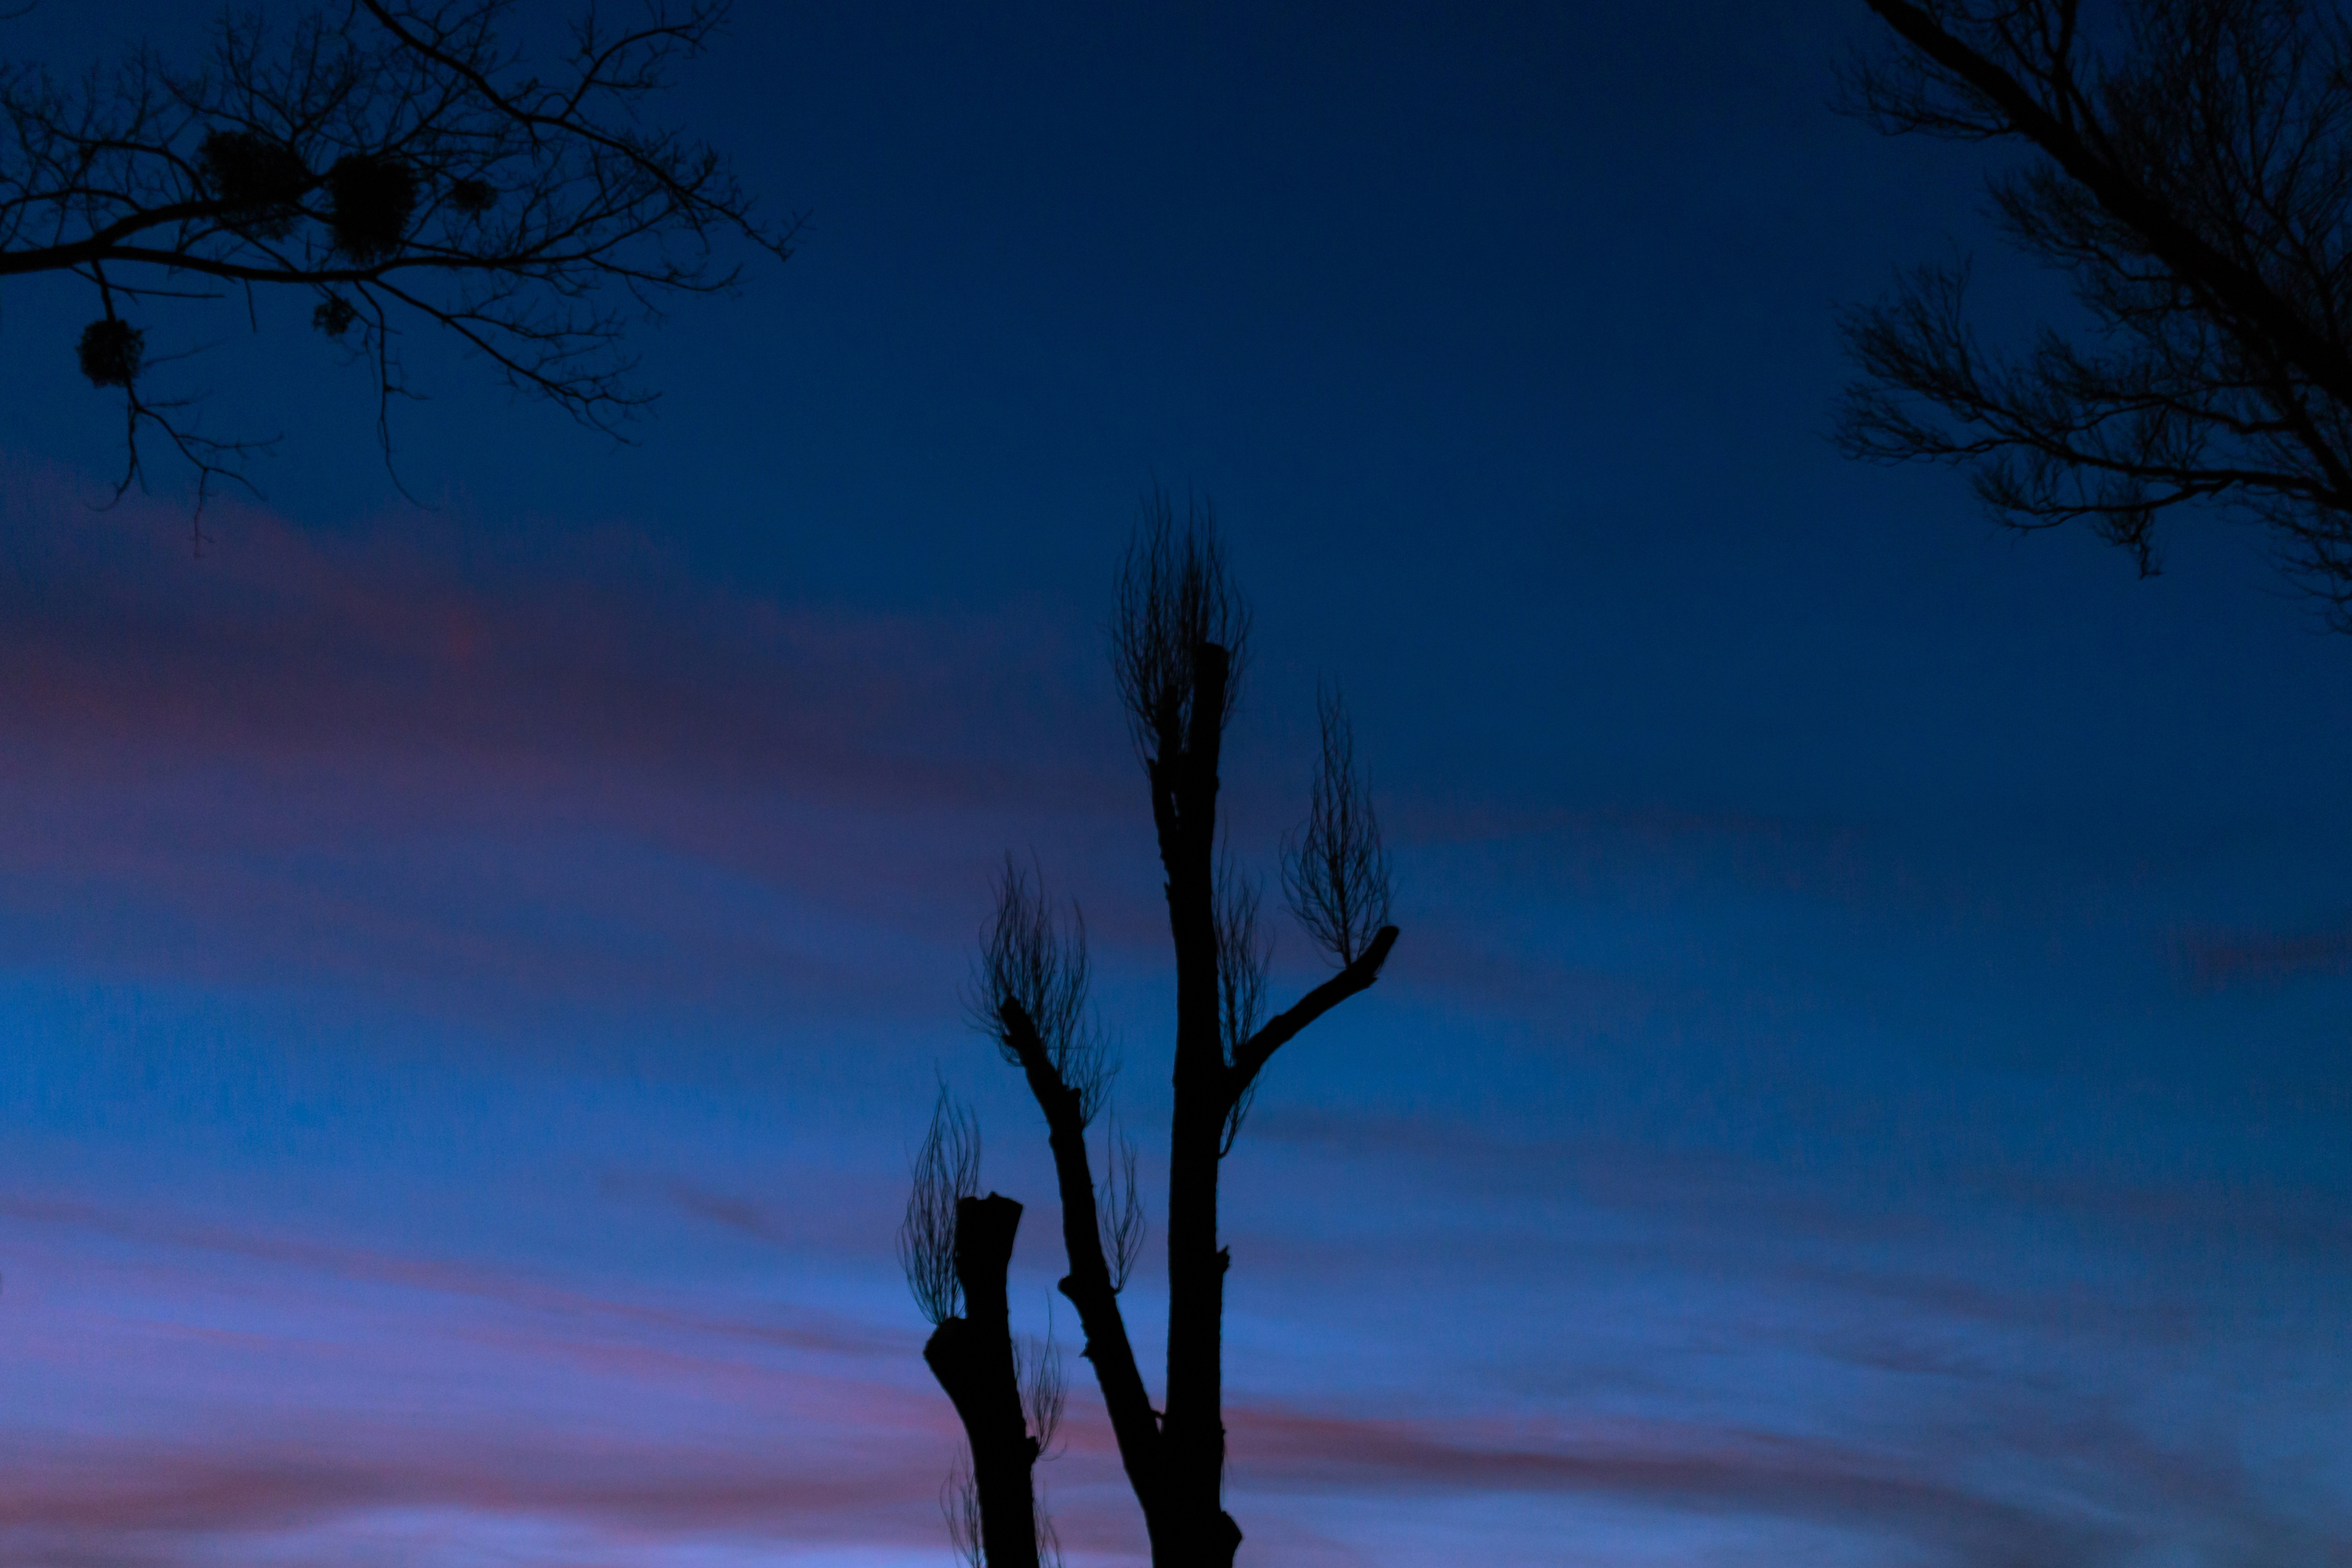 Trees close up at sunset during autumn example image 1